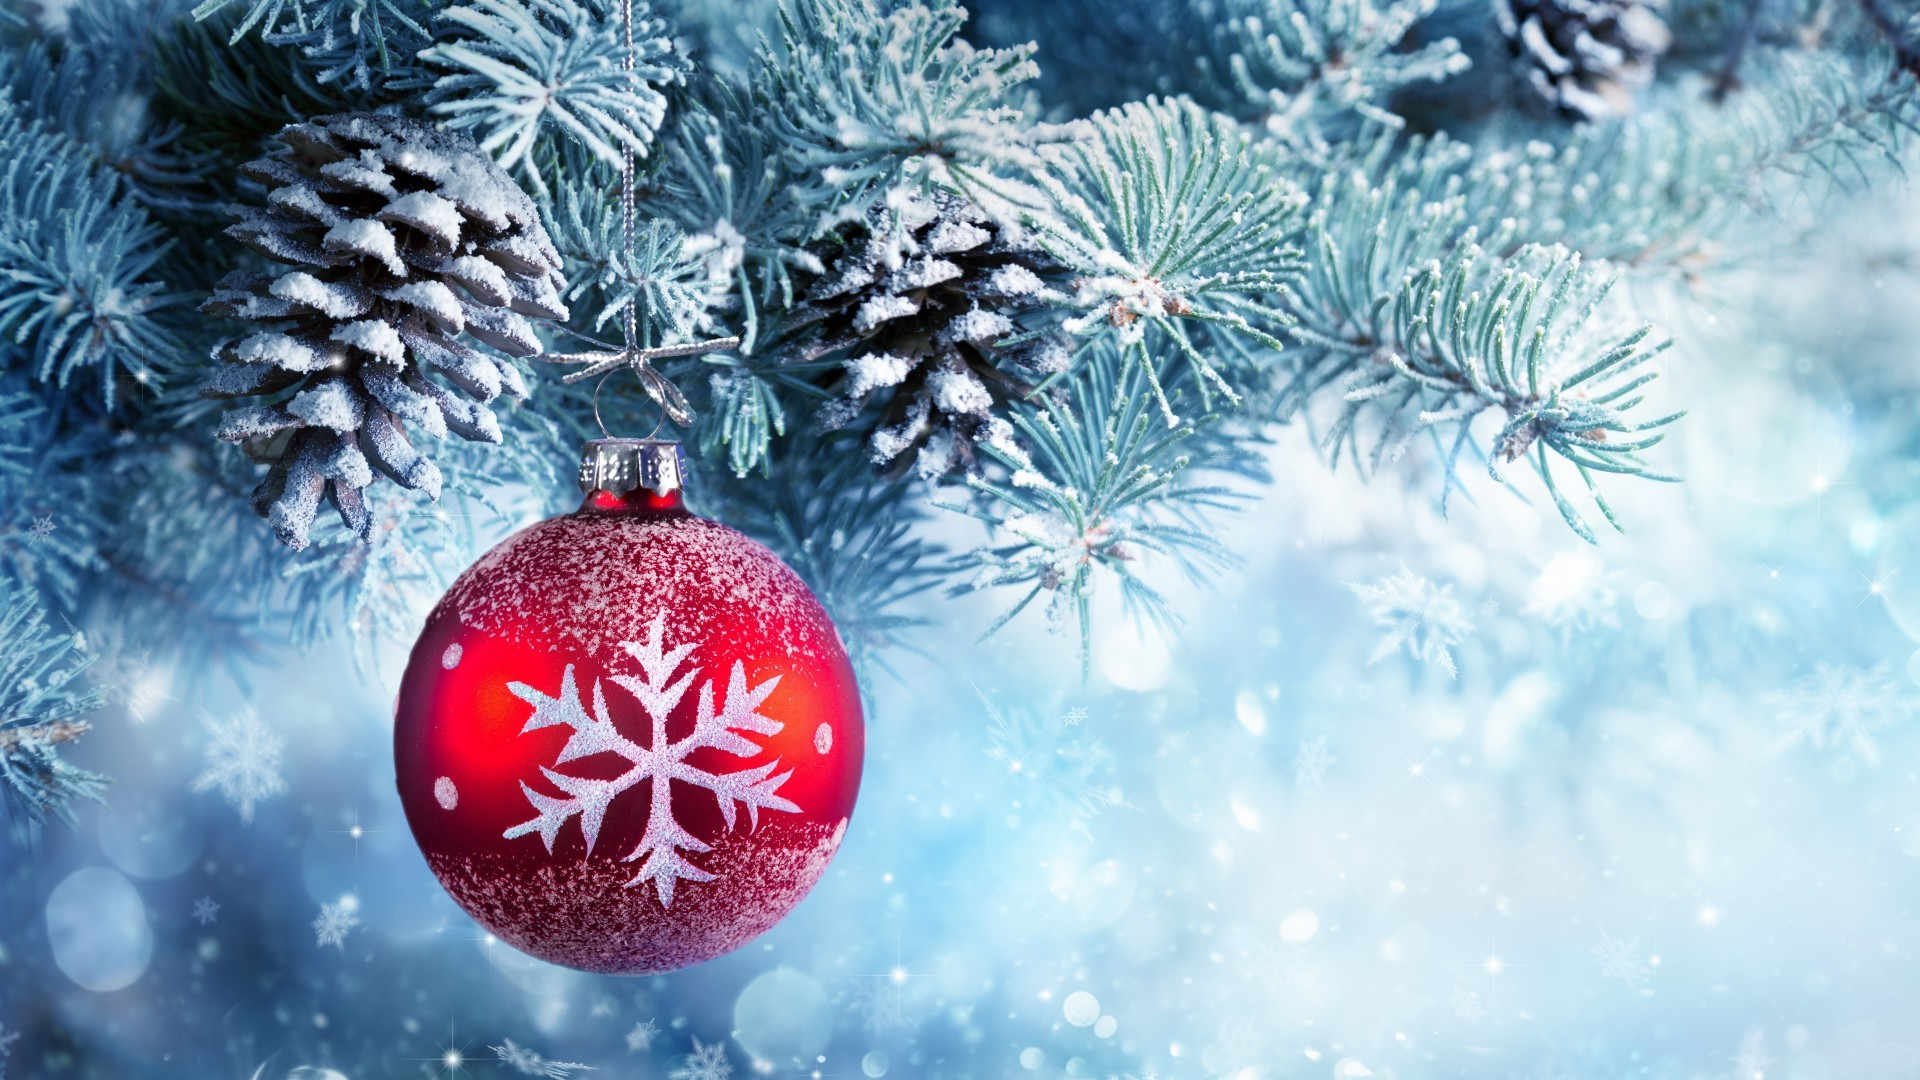 Winter Christmas Wallpaper 74 Pictures